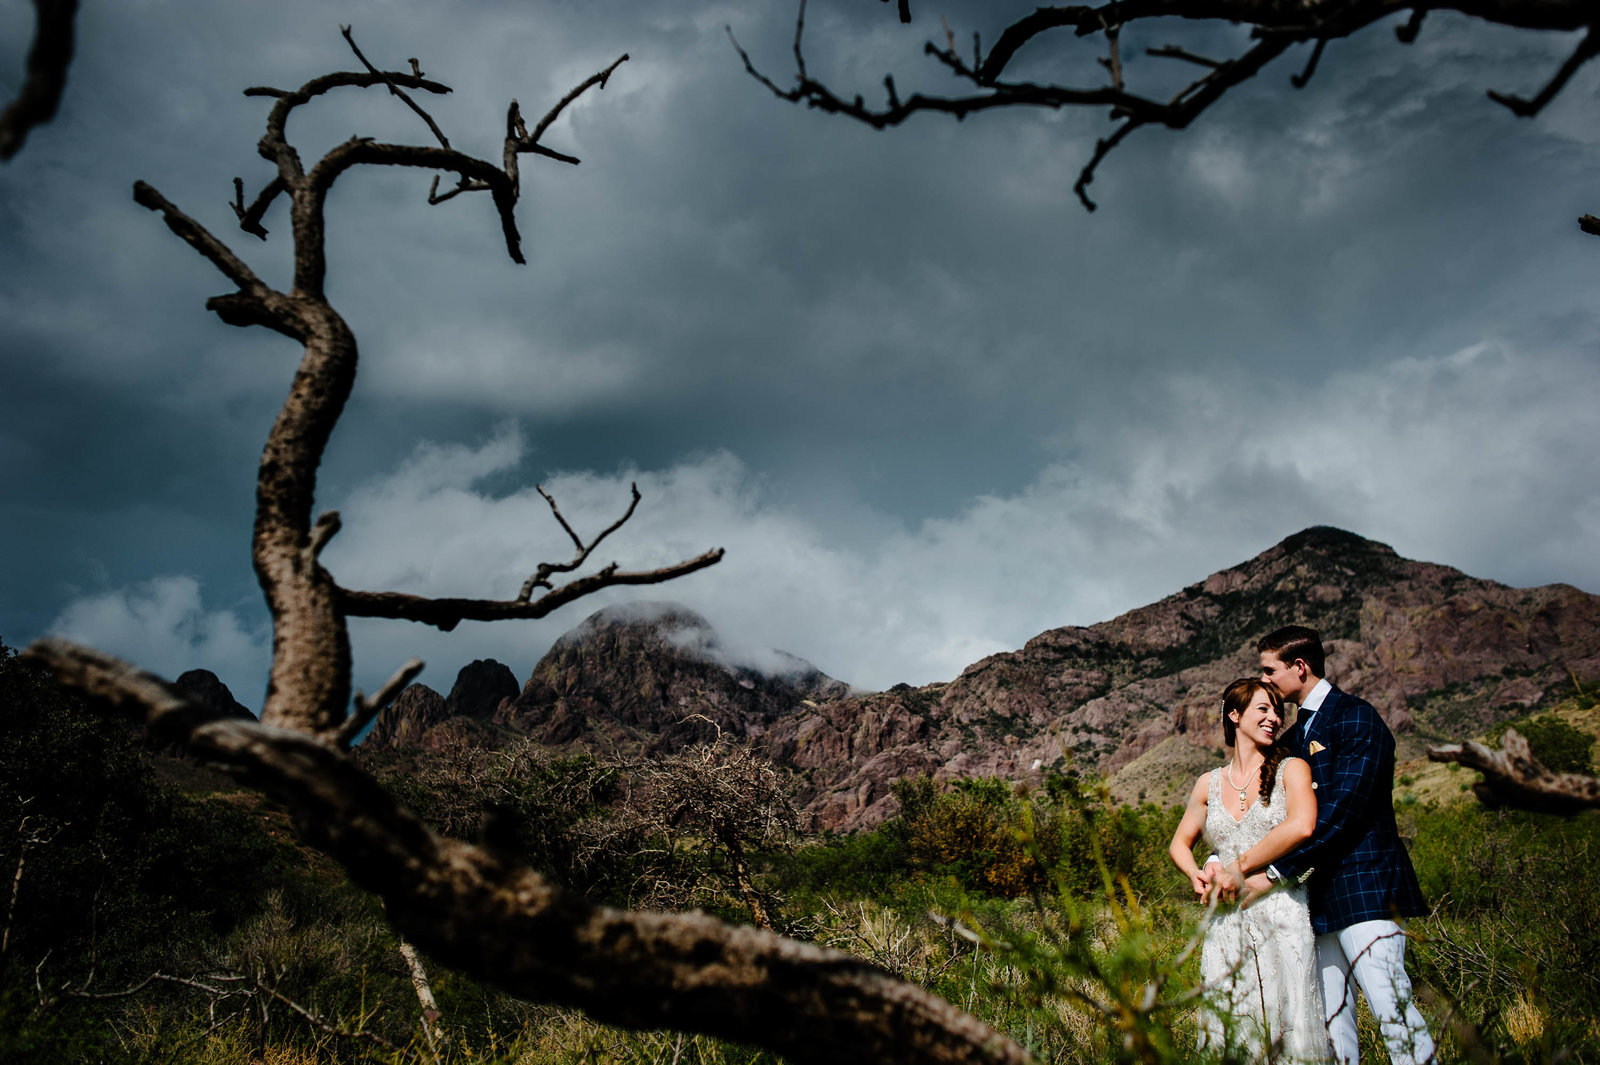 261-El-paso-wedding-photographer-El Paso Wedding Photographer_P52